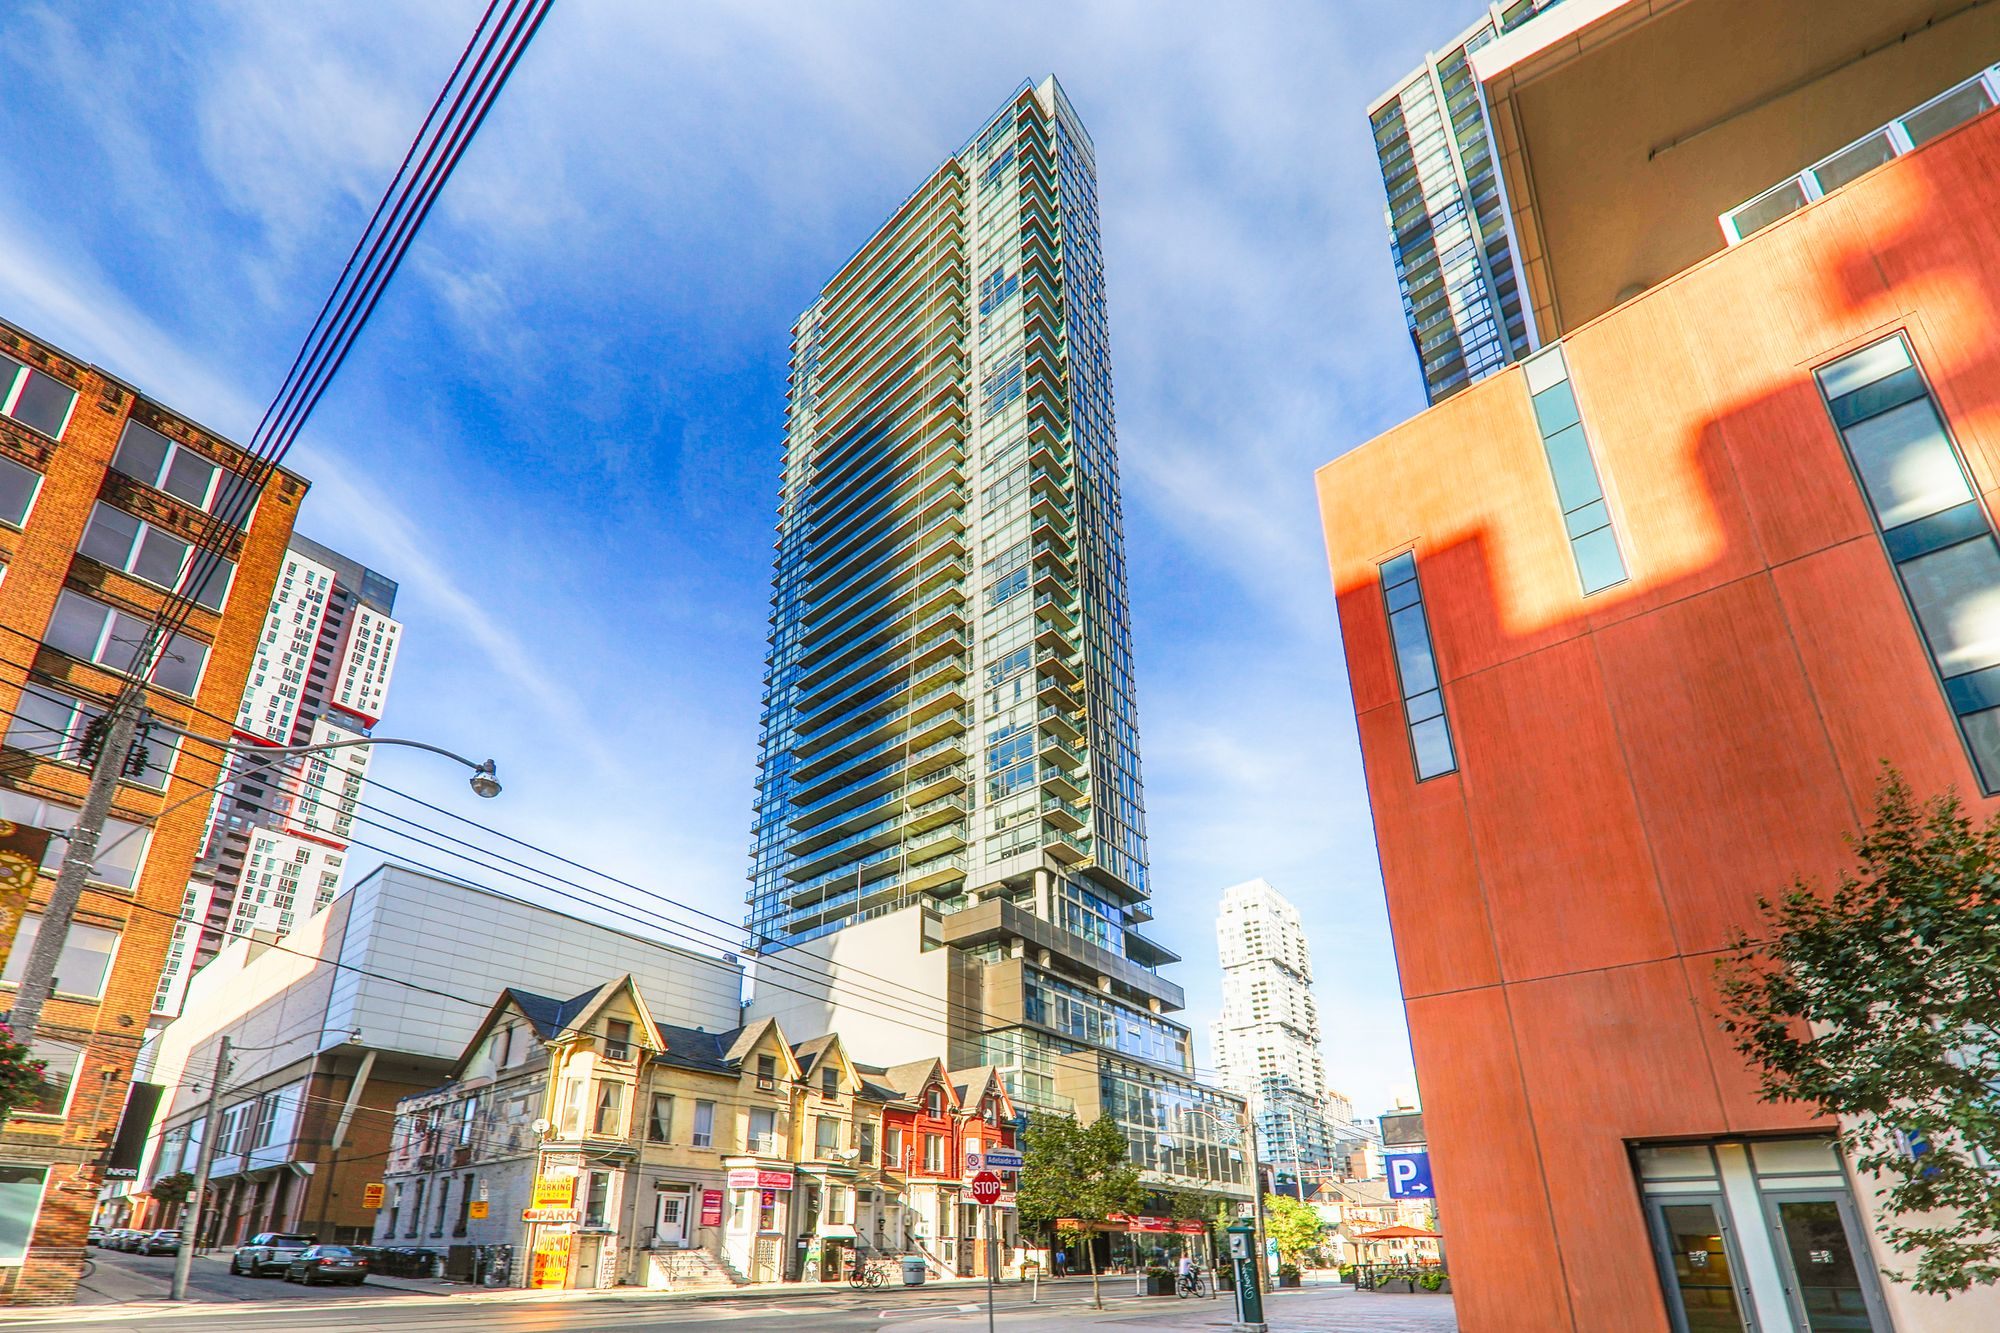 290 Adelaide St W. This condo at The Bond Condos is located in  Downtown, Toronto - image #1 of 4 by Strata.ca